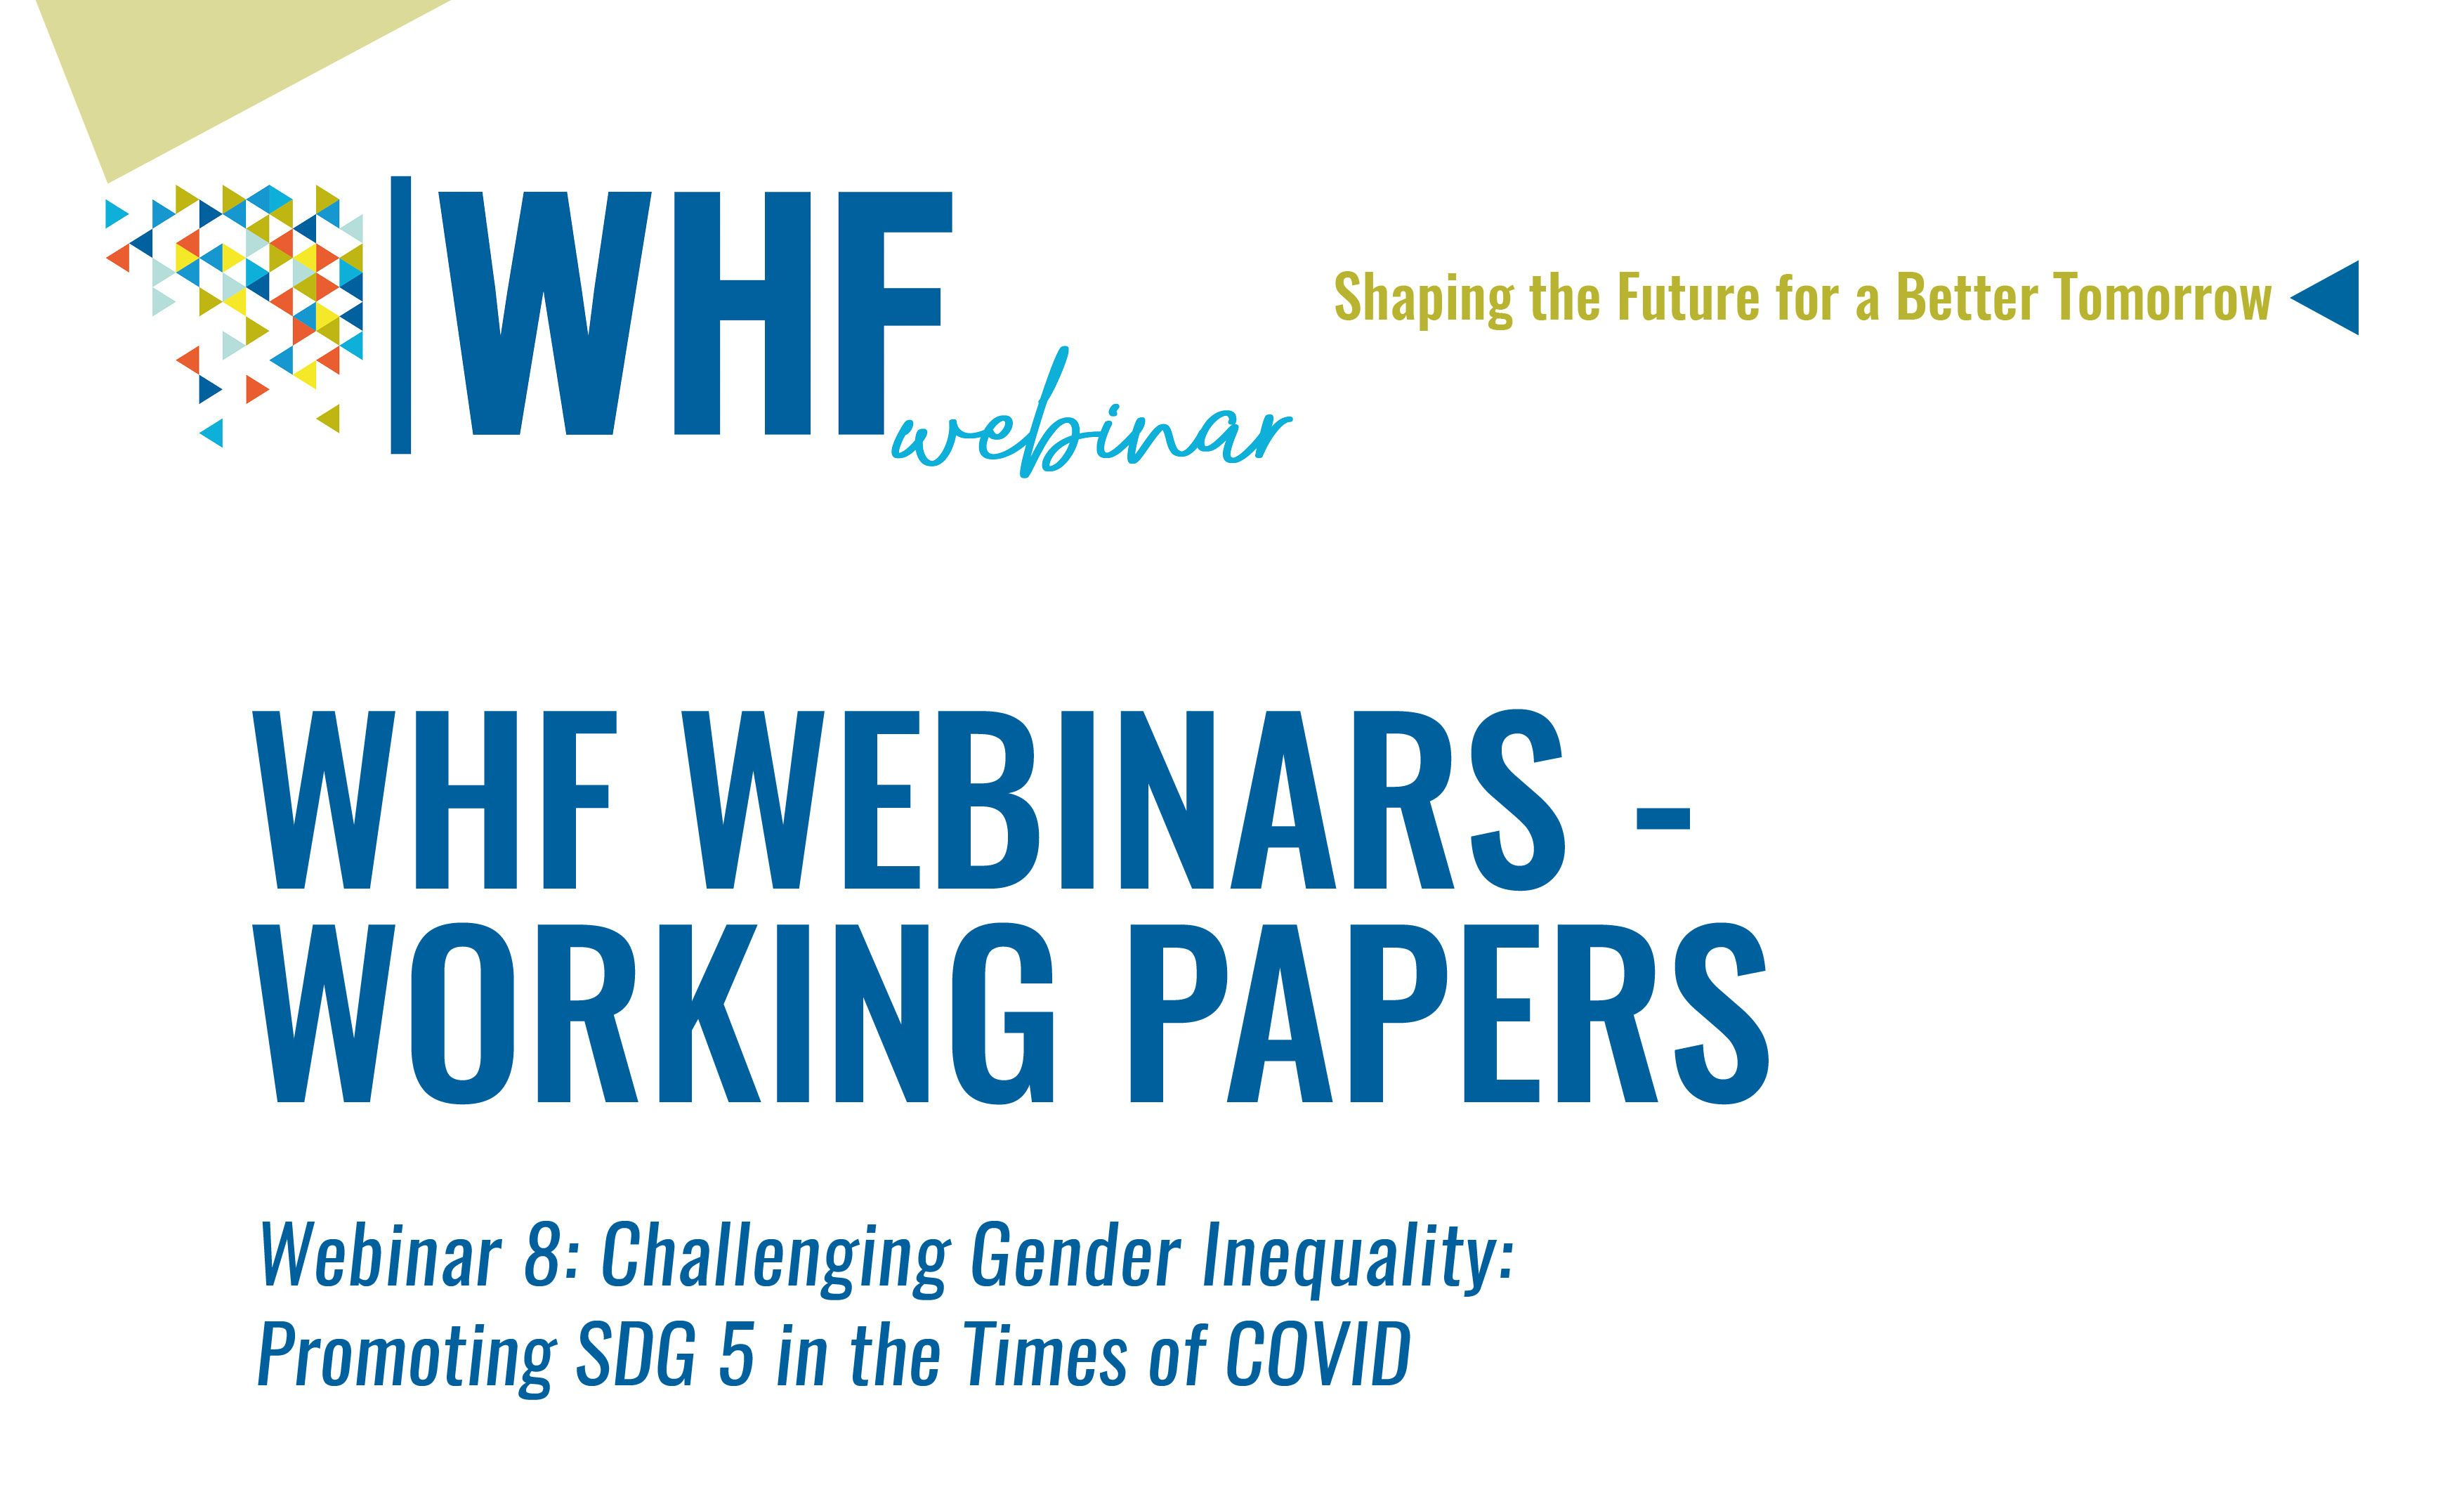 WORKING PAPERS Webinar 8: Challenging Gender Inequality - Promoting SDG 5 in the times of COVID-19